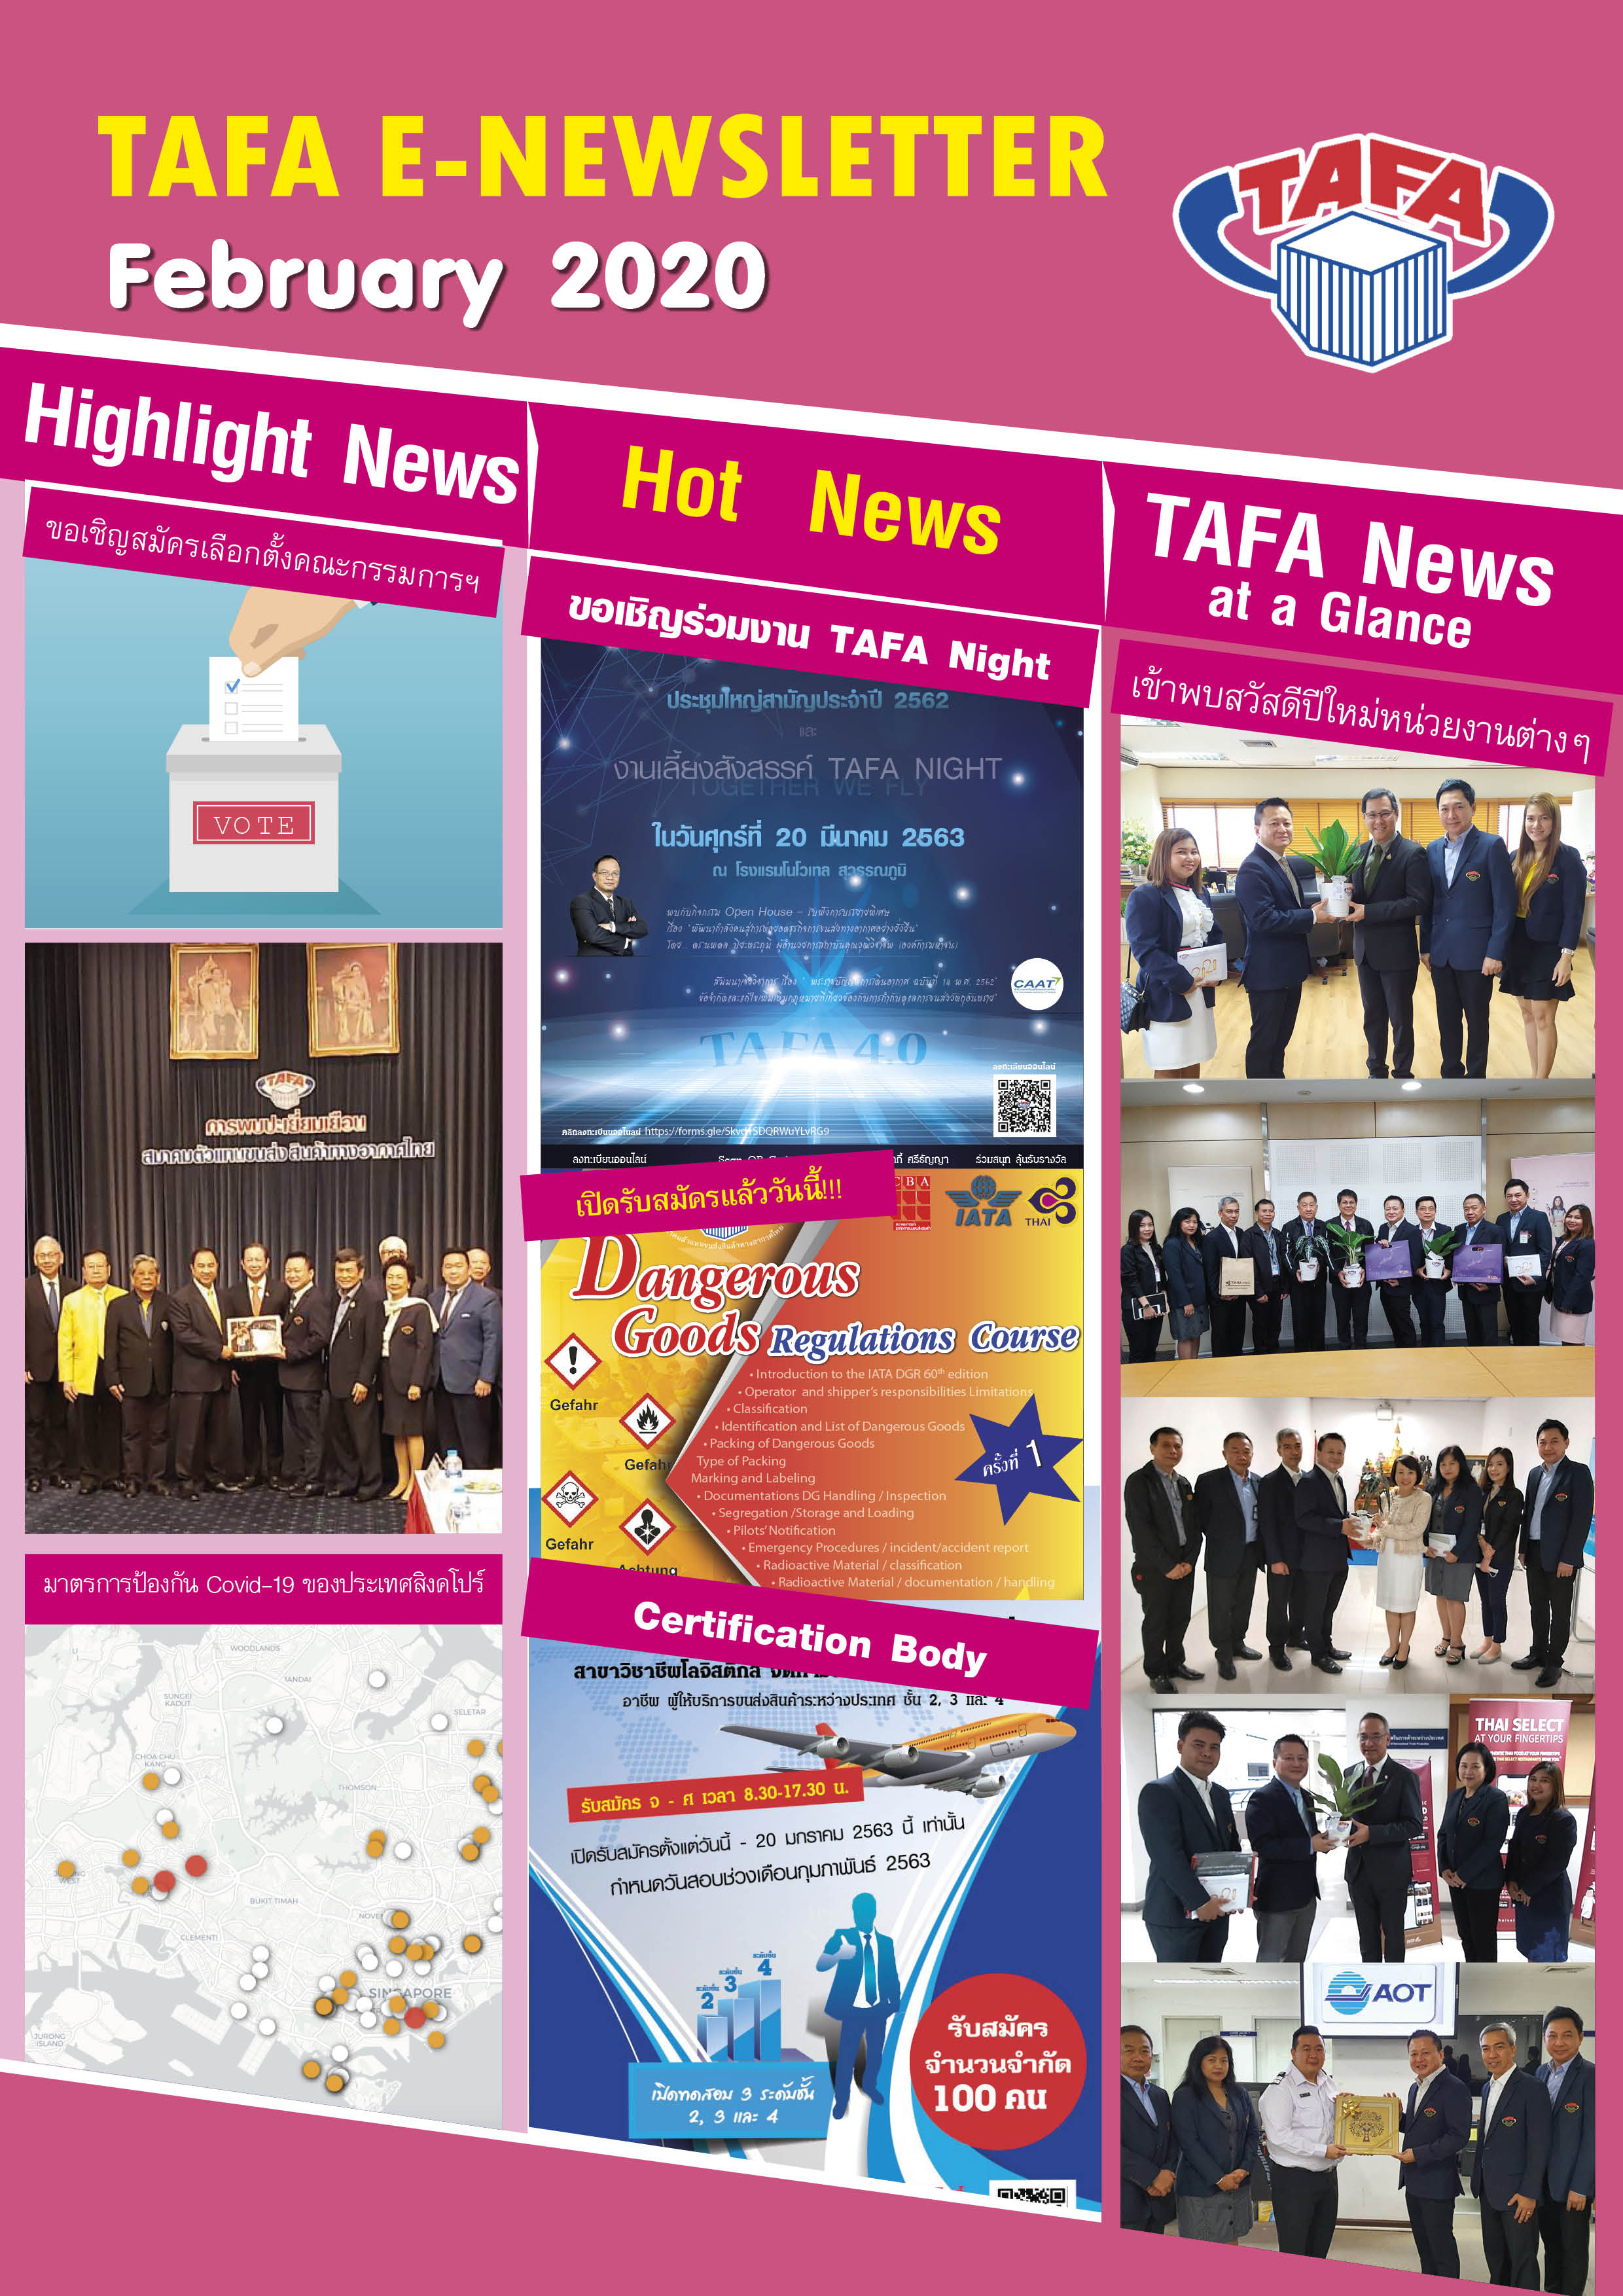 TAFA Newsletter, Issue 2 of February 2020